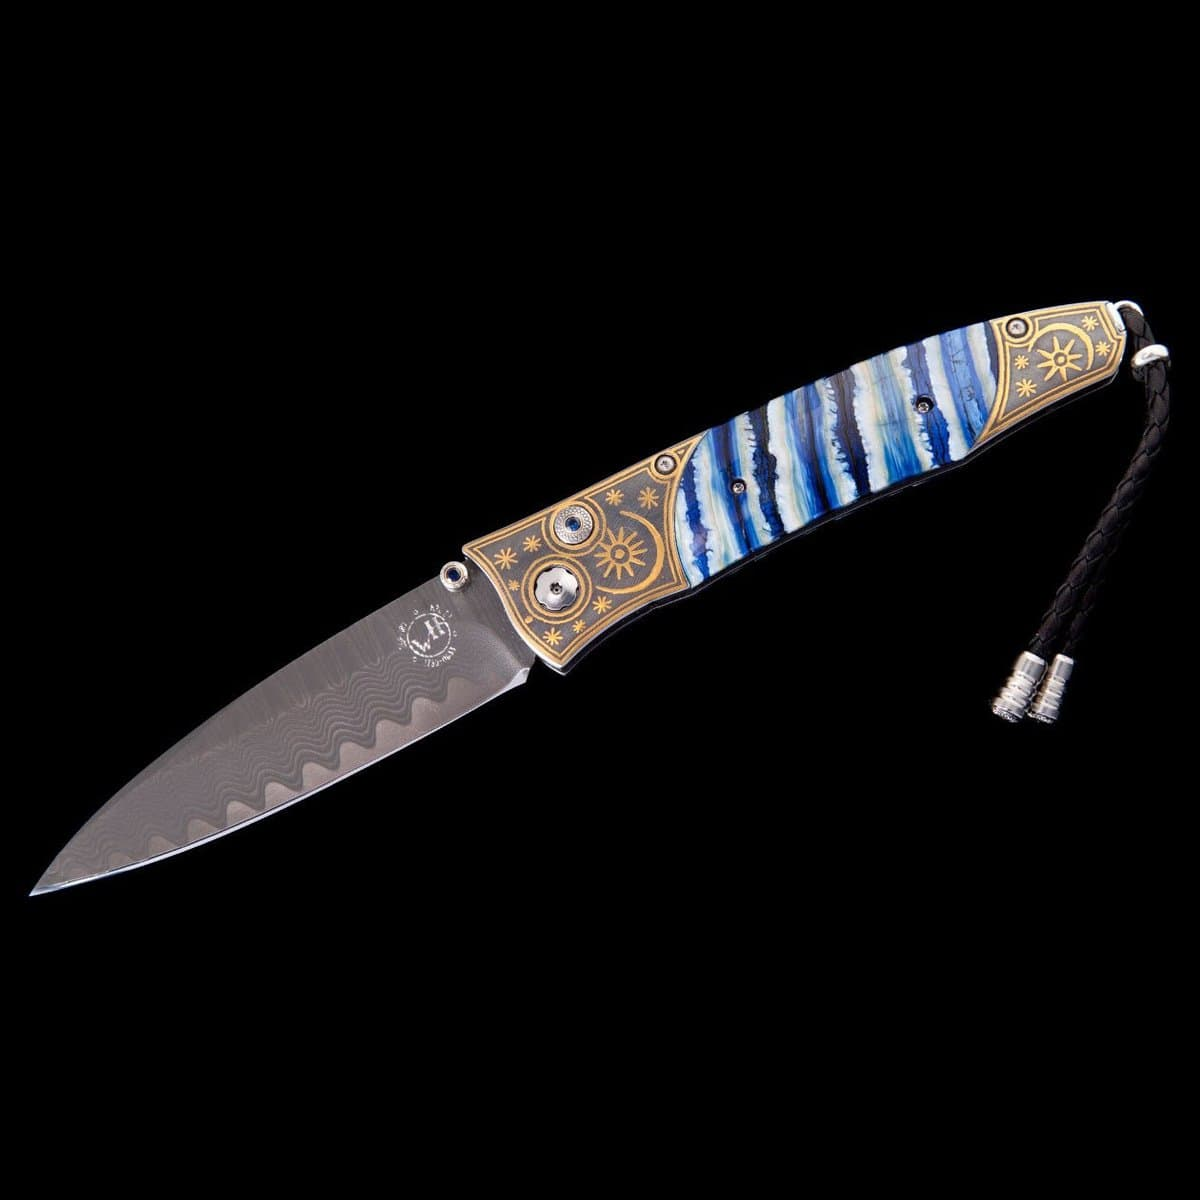 Gentac Blue Moon Limited Edition Knife - B30 BLUE MOON-William Henry-Renee Taylor Gallery